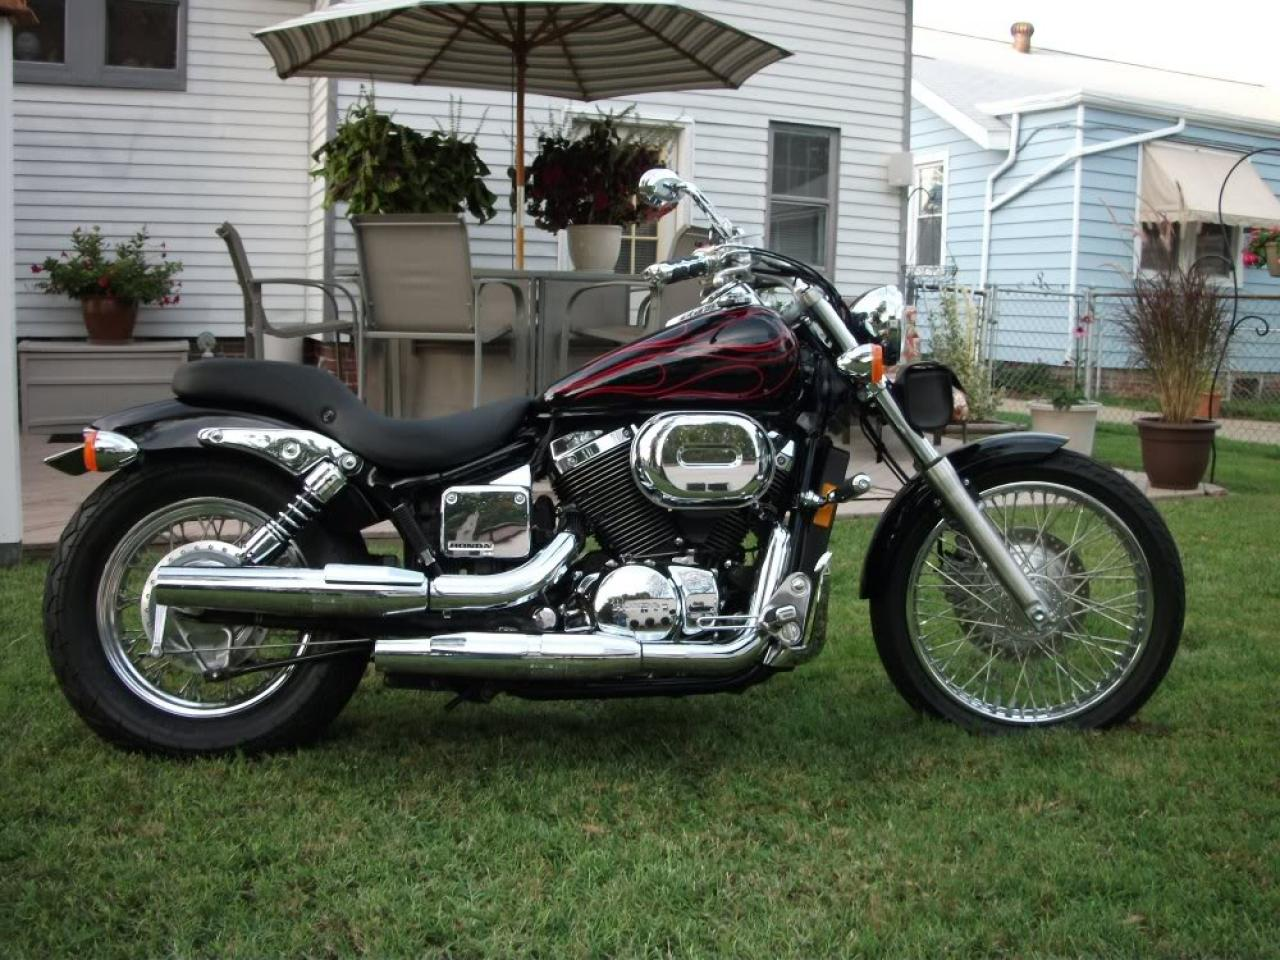 2007 honda shadow spirit 750dc vt 750 dc moto zombdrive com. Black Bedroom Furniture Sets. Home Design Ideas